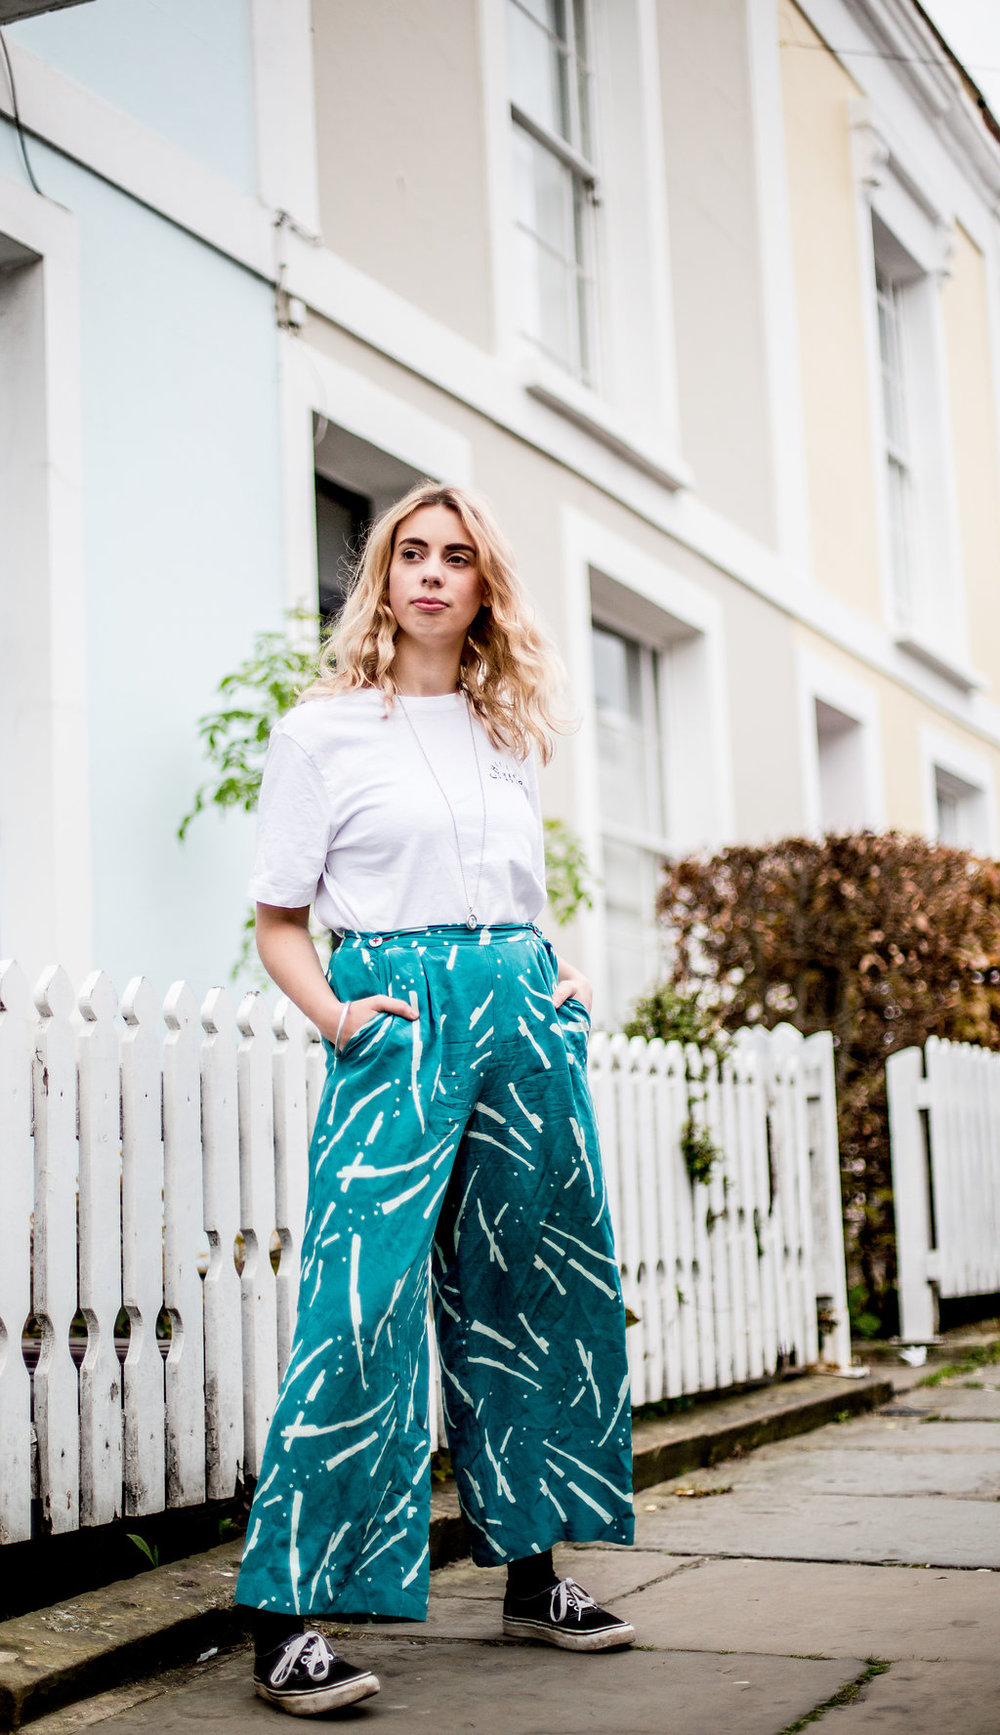 MATTER Prints teal flare trousers  // A Week Of Vibrant & Global Outfits With Francesca Willow From Ethical Unicorn on The Good Trade